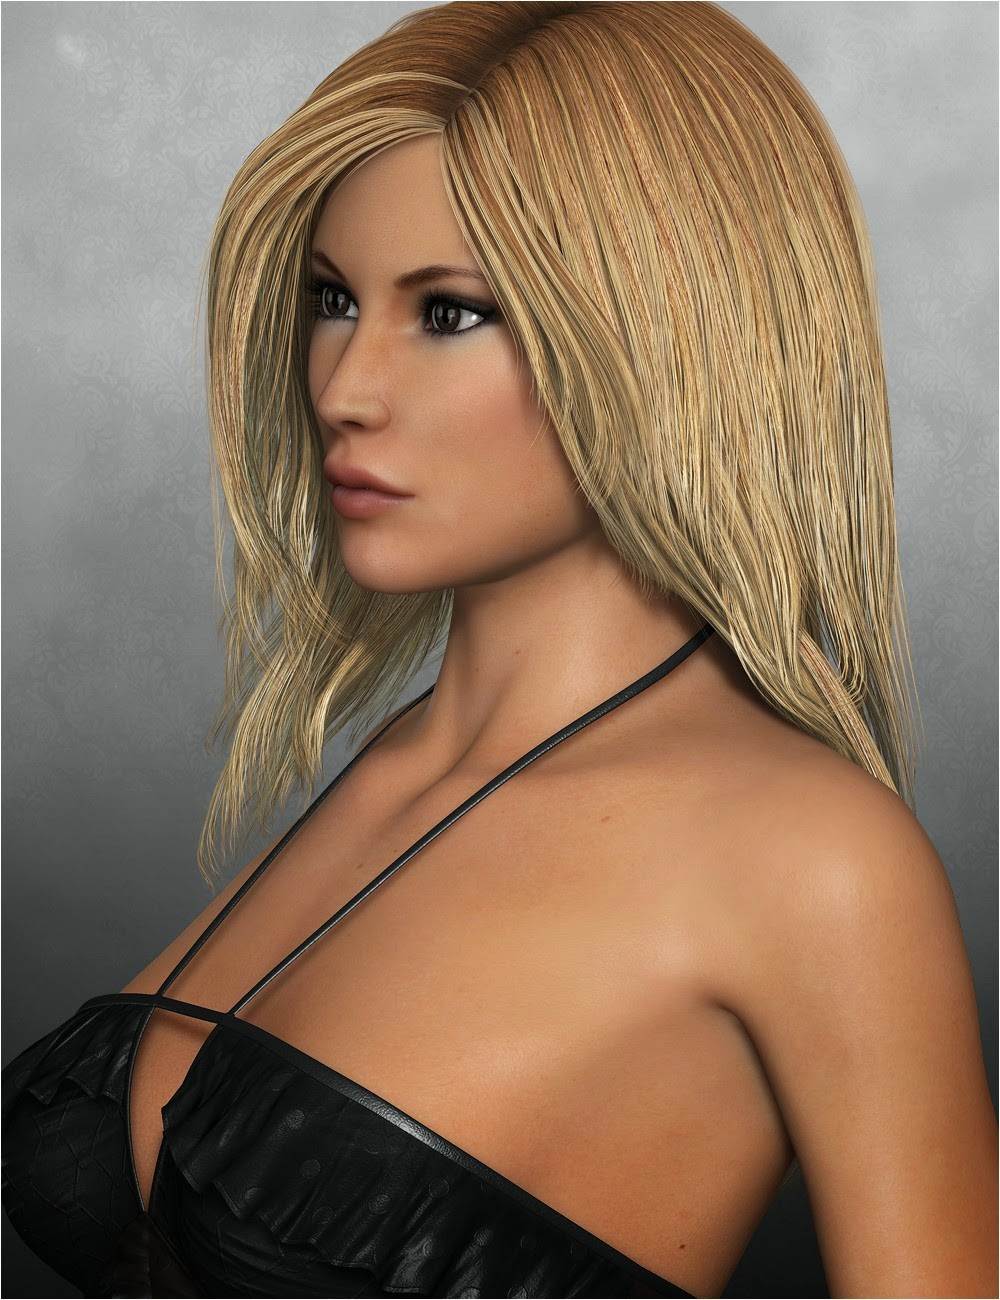 3d Models - Alessandra for Victoria 4 and Genesis